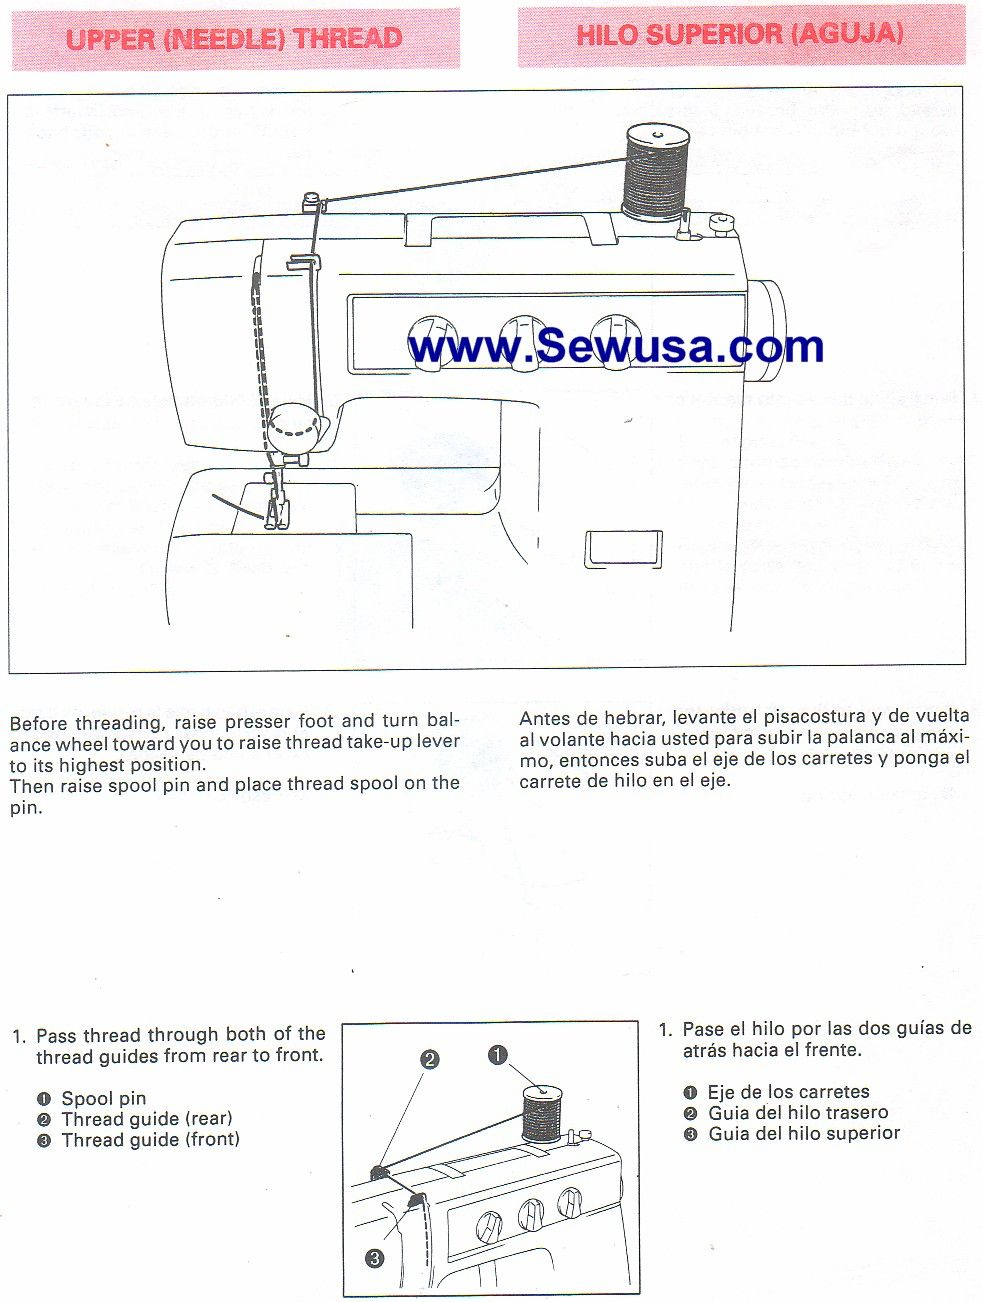 Brother VX 1100 Sewing Machine Threading Diagram | Sew What? | Brother sewing machines, Sewing